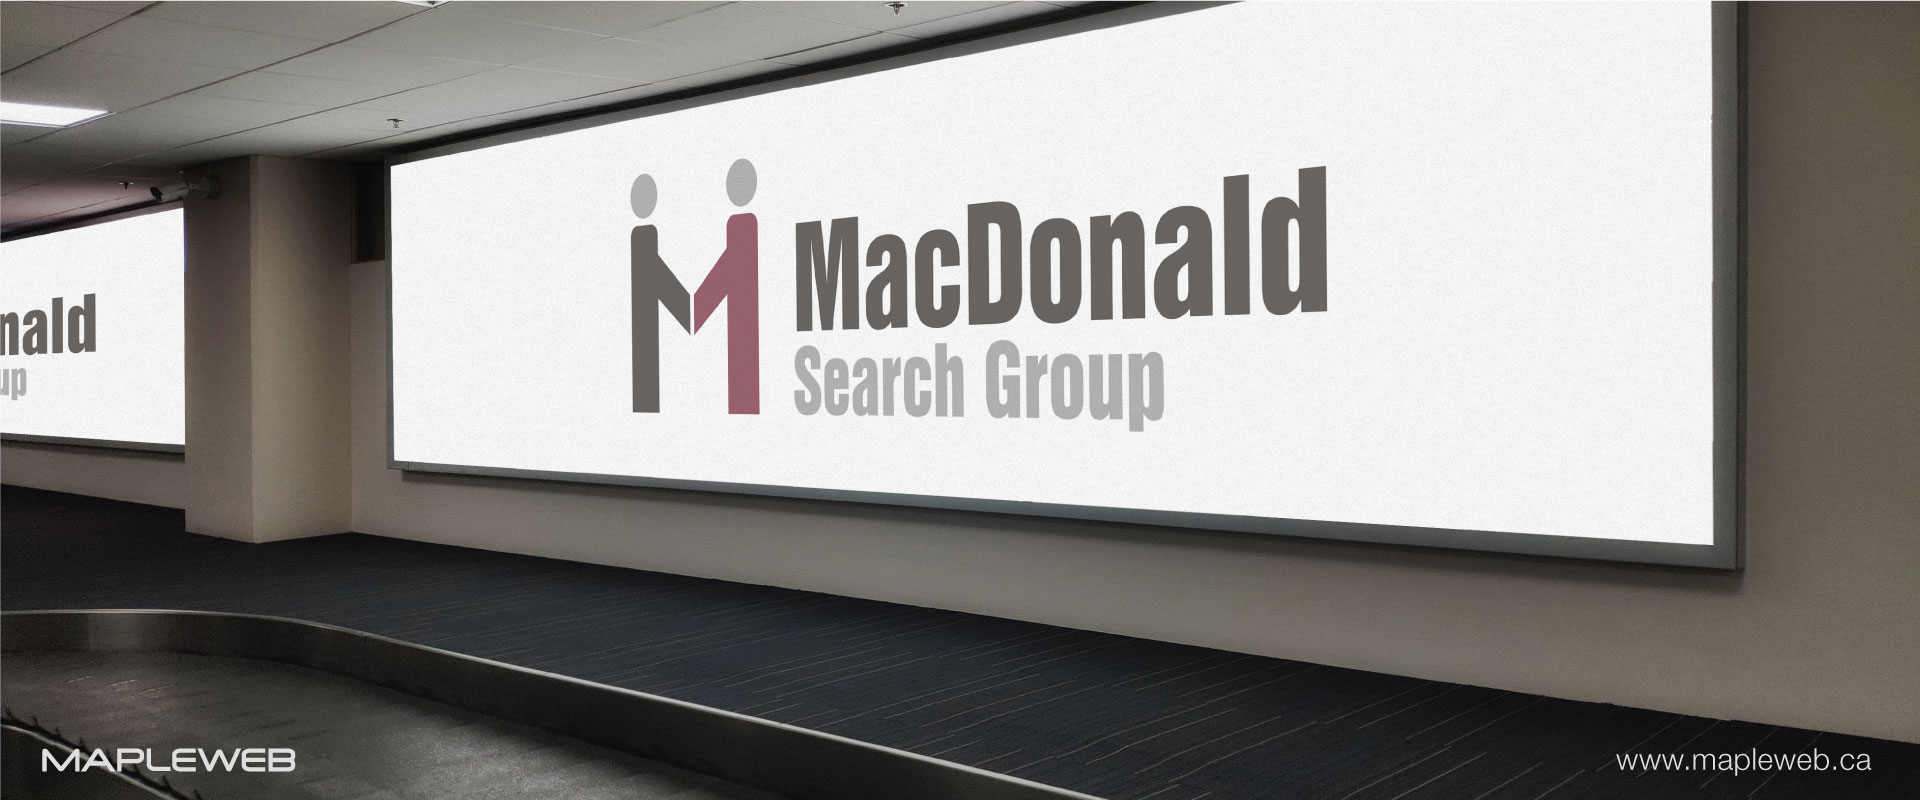 macdonald-search-group-brand-logo-design-by-mapleweb-vancouver-canada-led-signage-mock